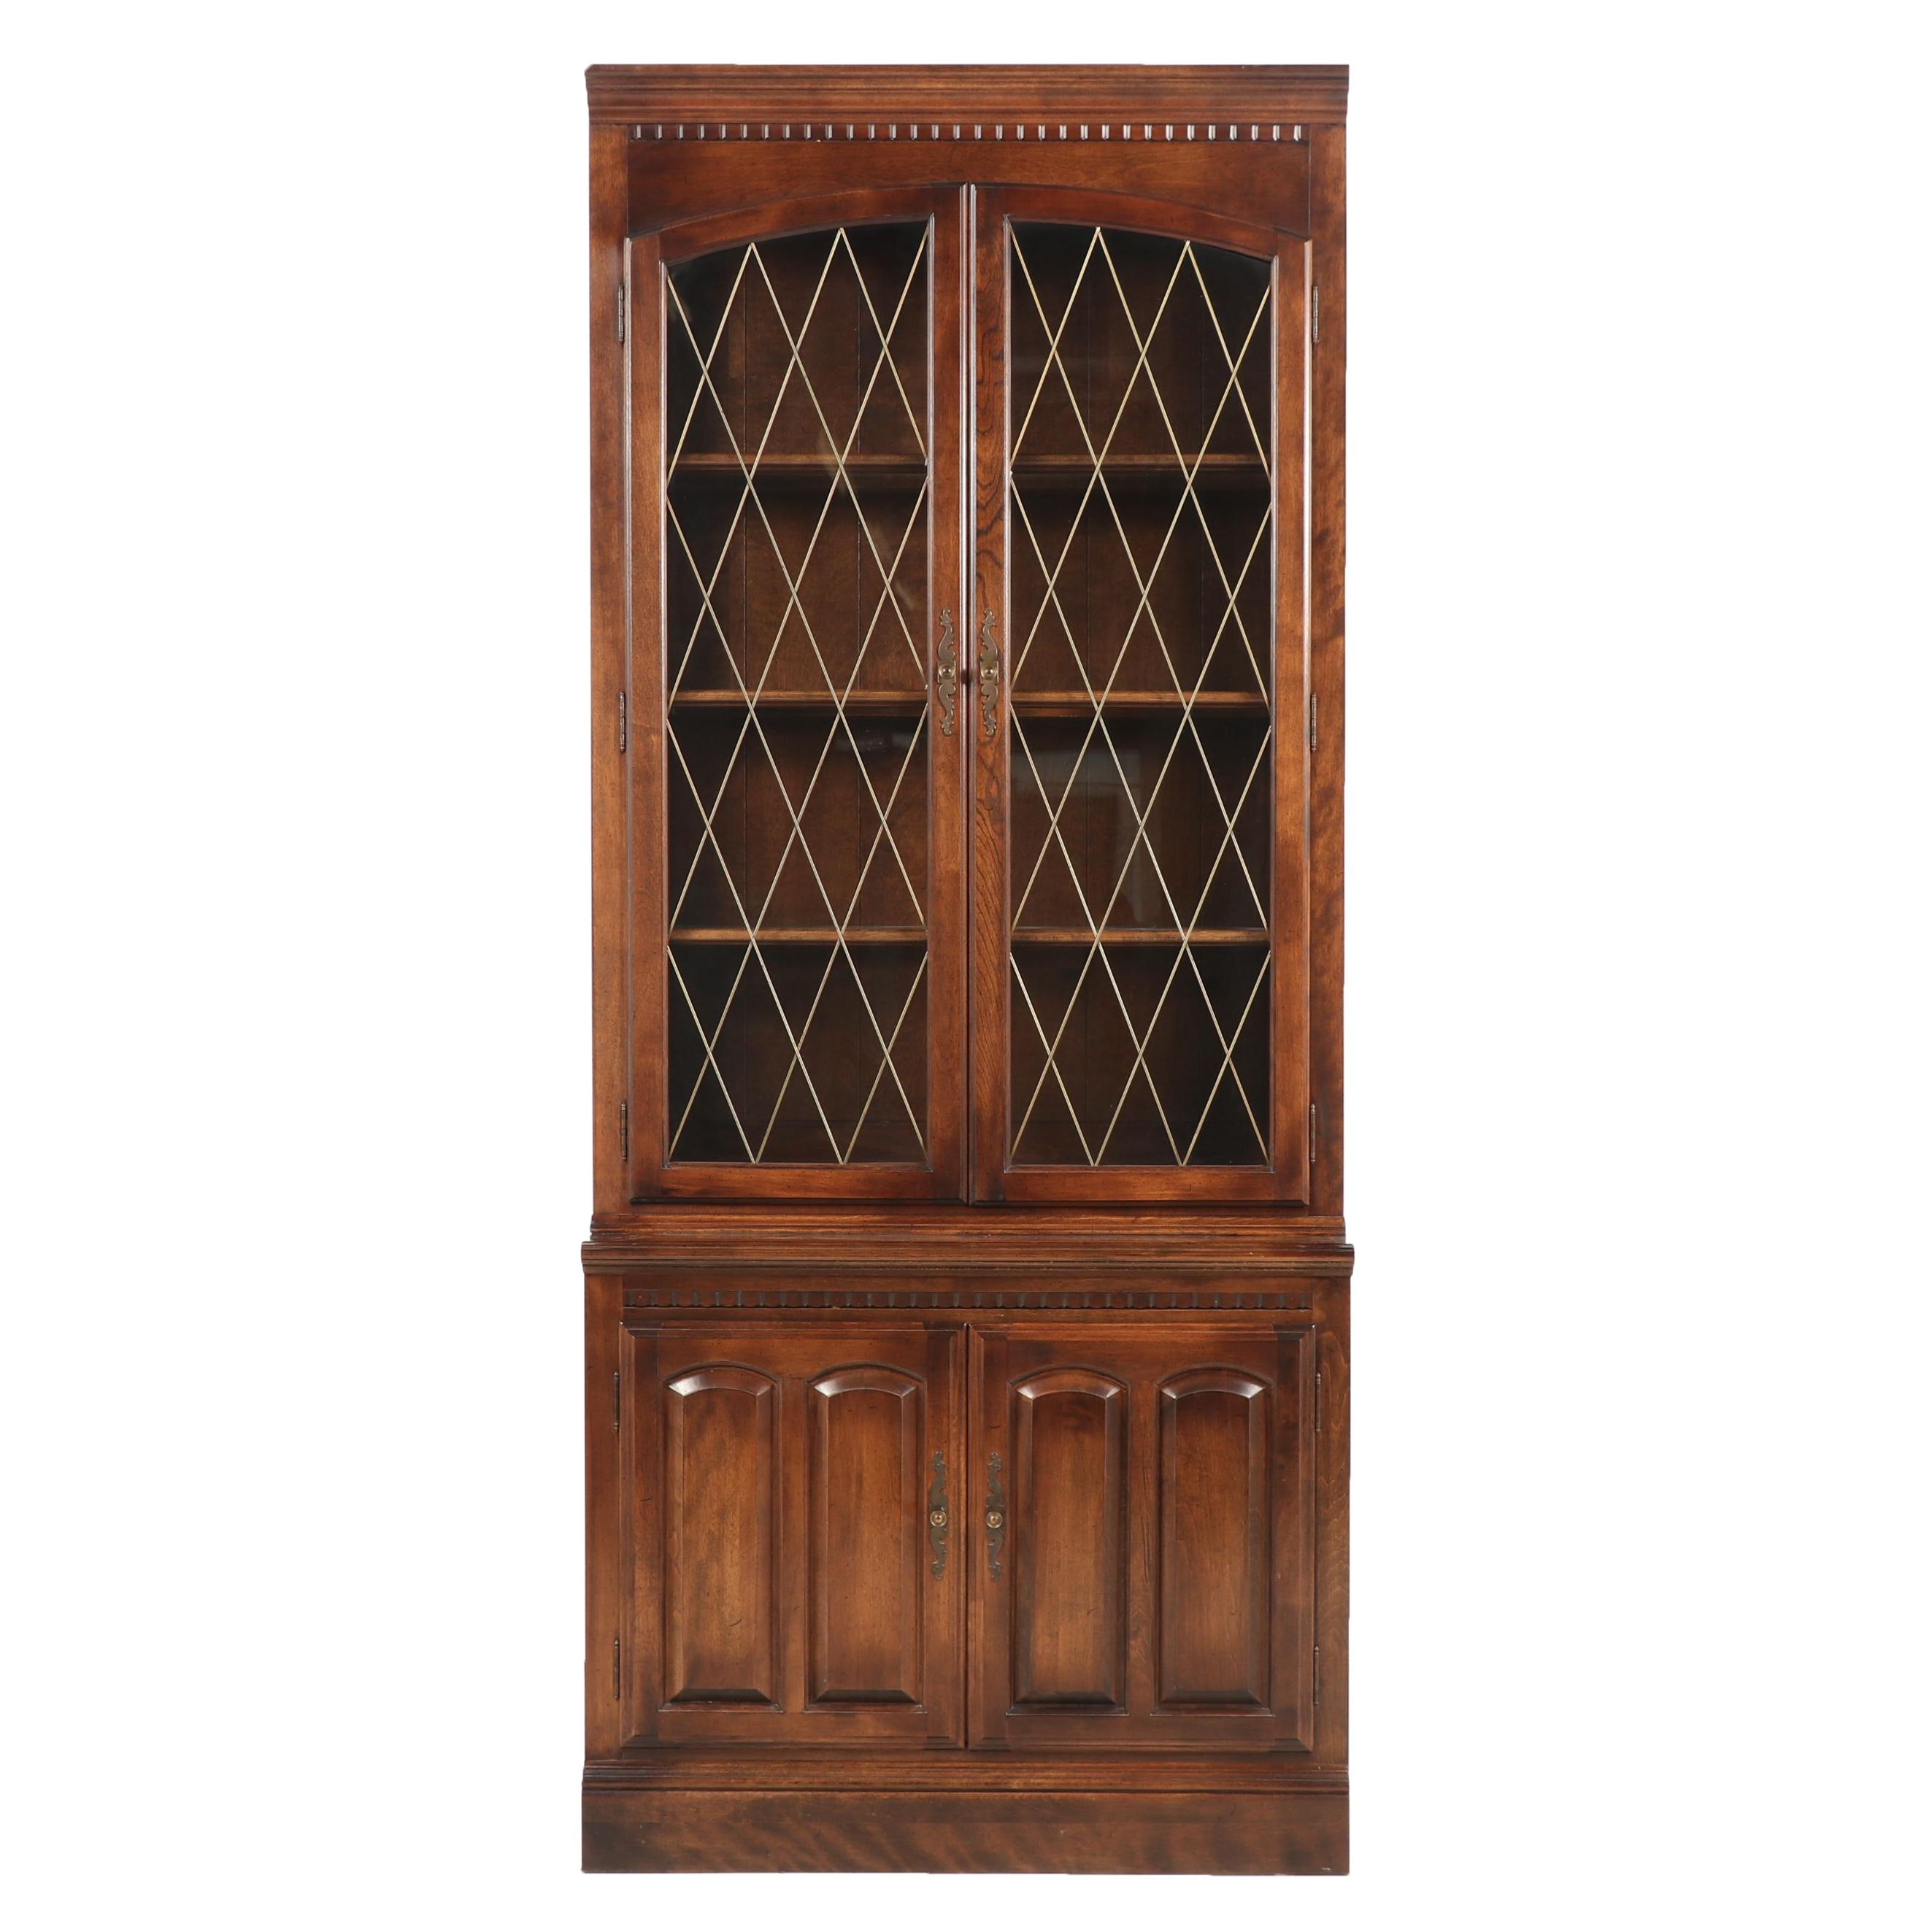 Ethan Allen Display Cabinet with Drawers, Late 20th Century